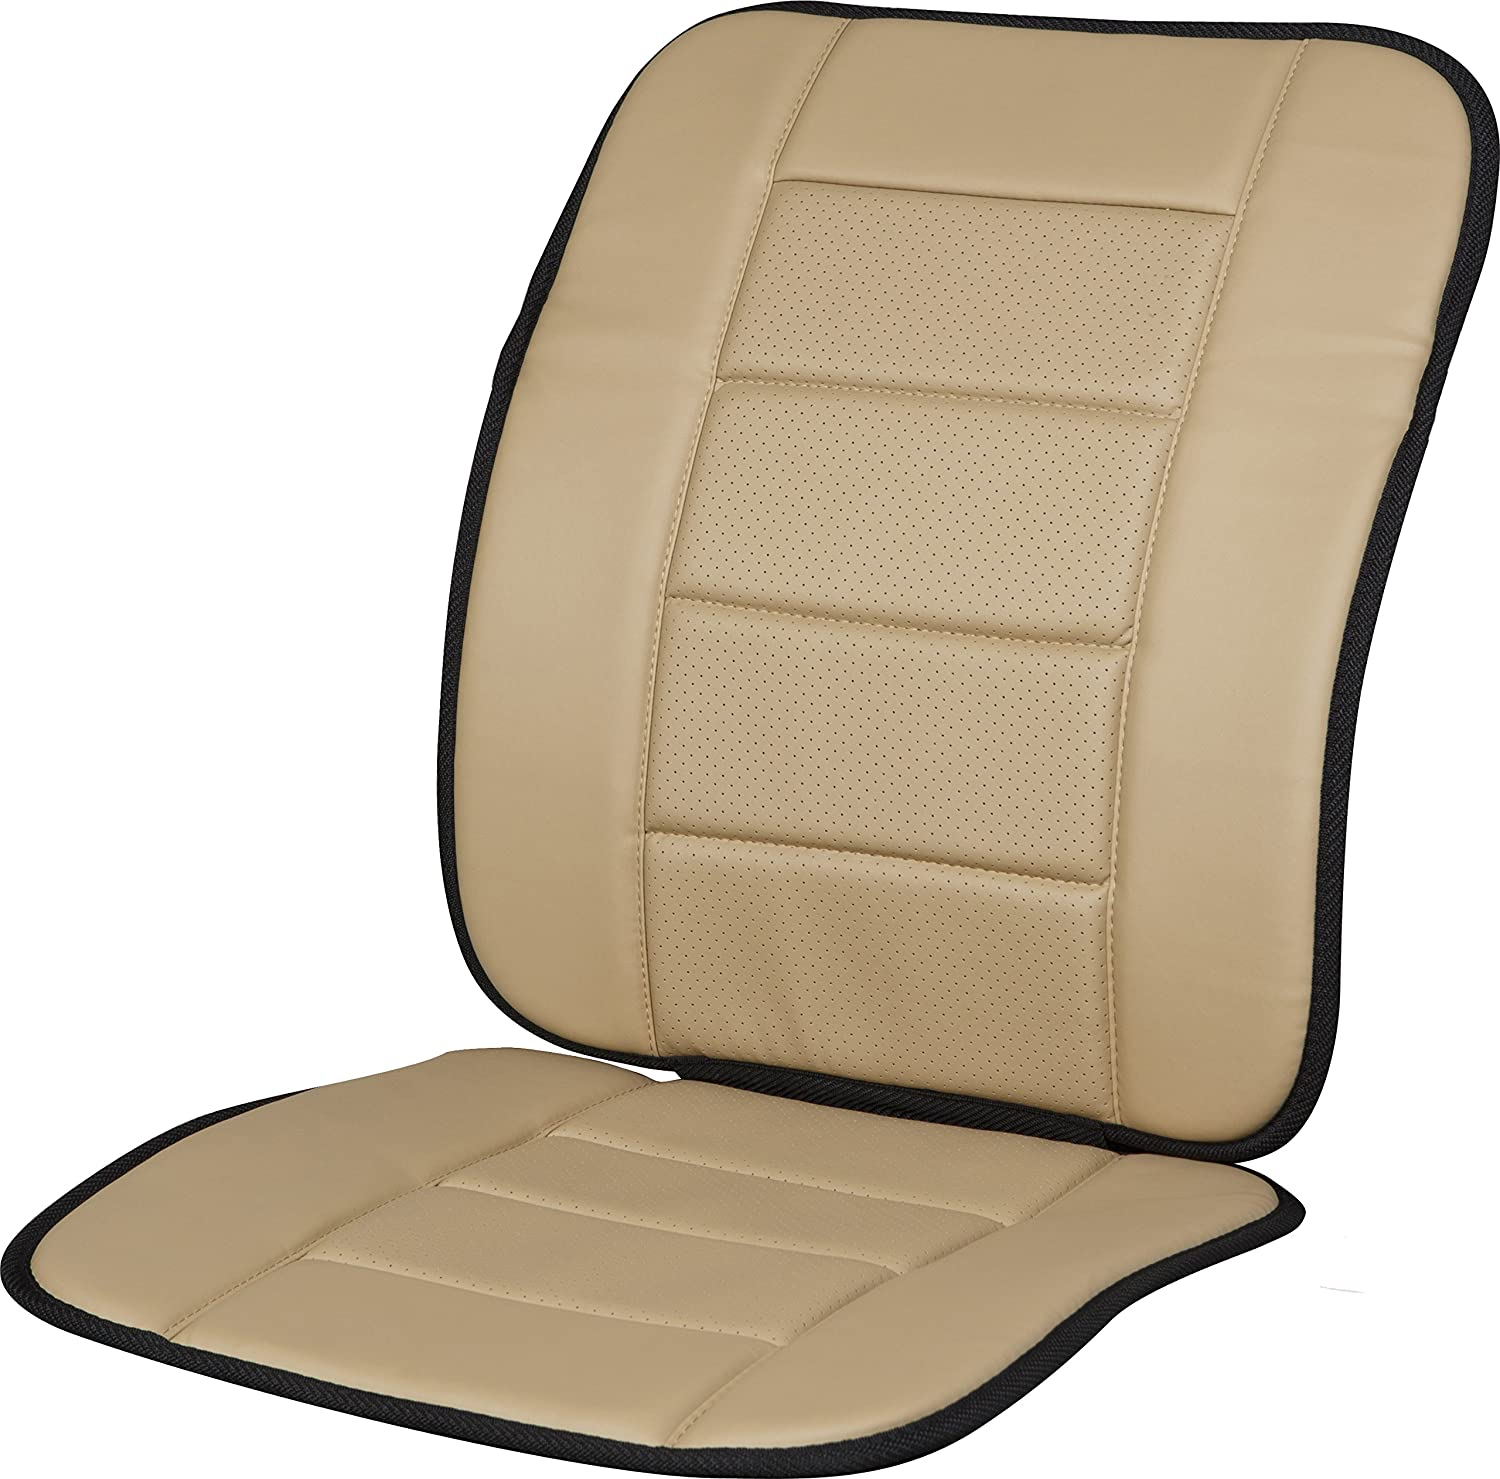 Kool Kooshion 60-287005B Faux Leather Full Seat Cushion, Black